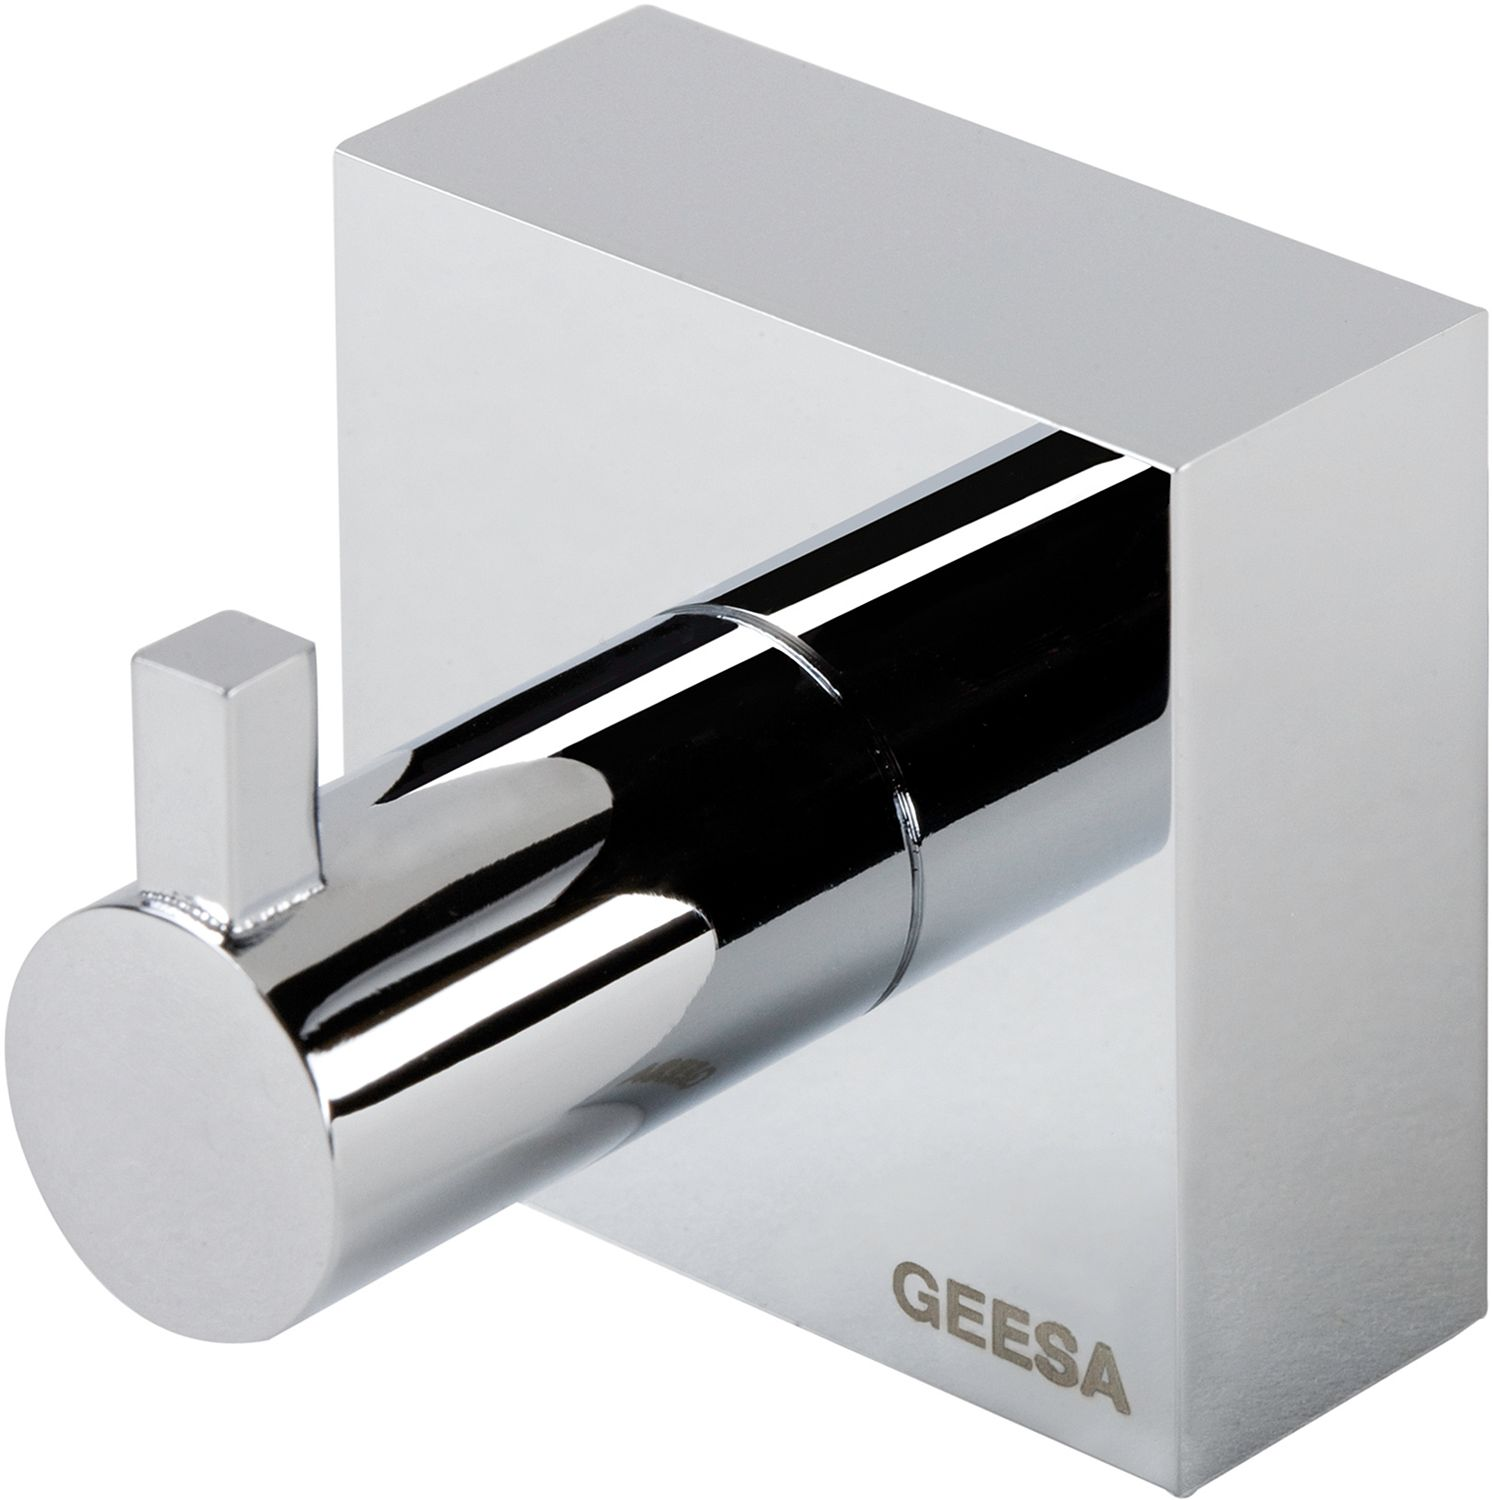 PORTE-MANTEAU SIMPLE GEESA NEXX CHROME